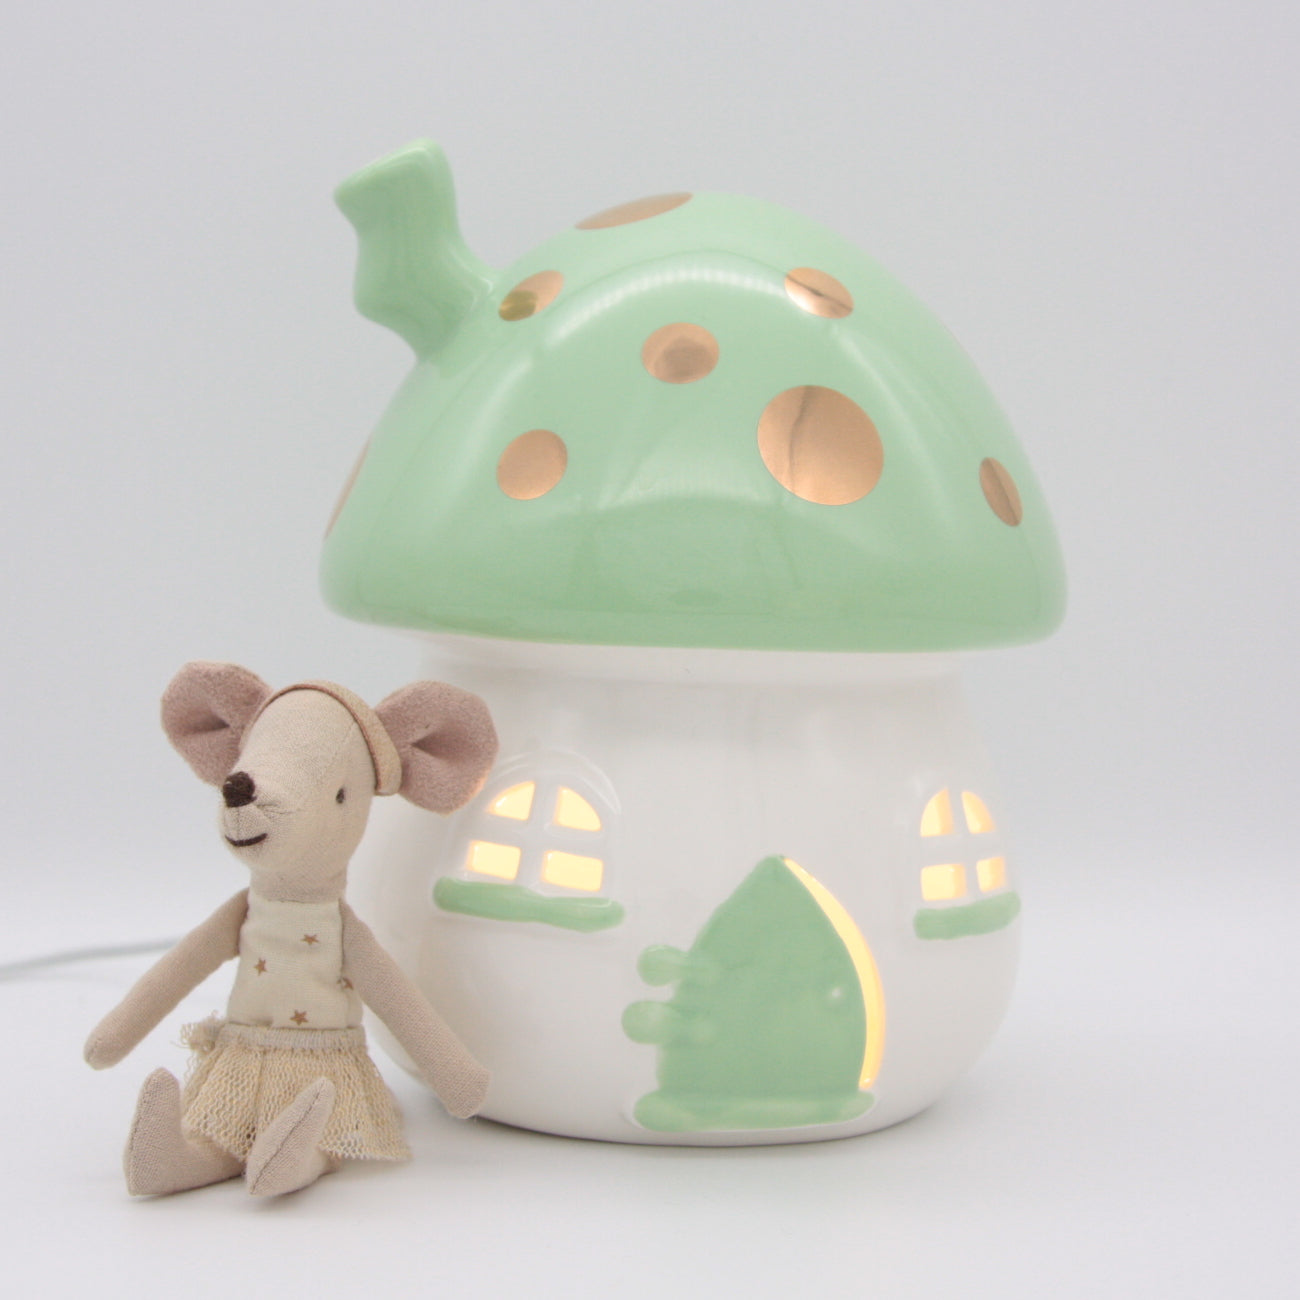 Little Belle Nightlight - Mushroom - Mint and Gold